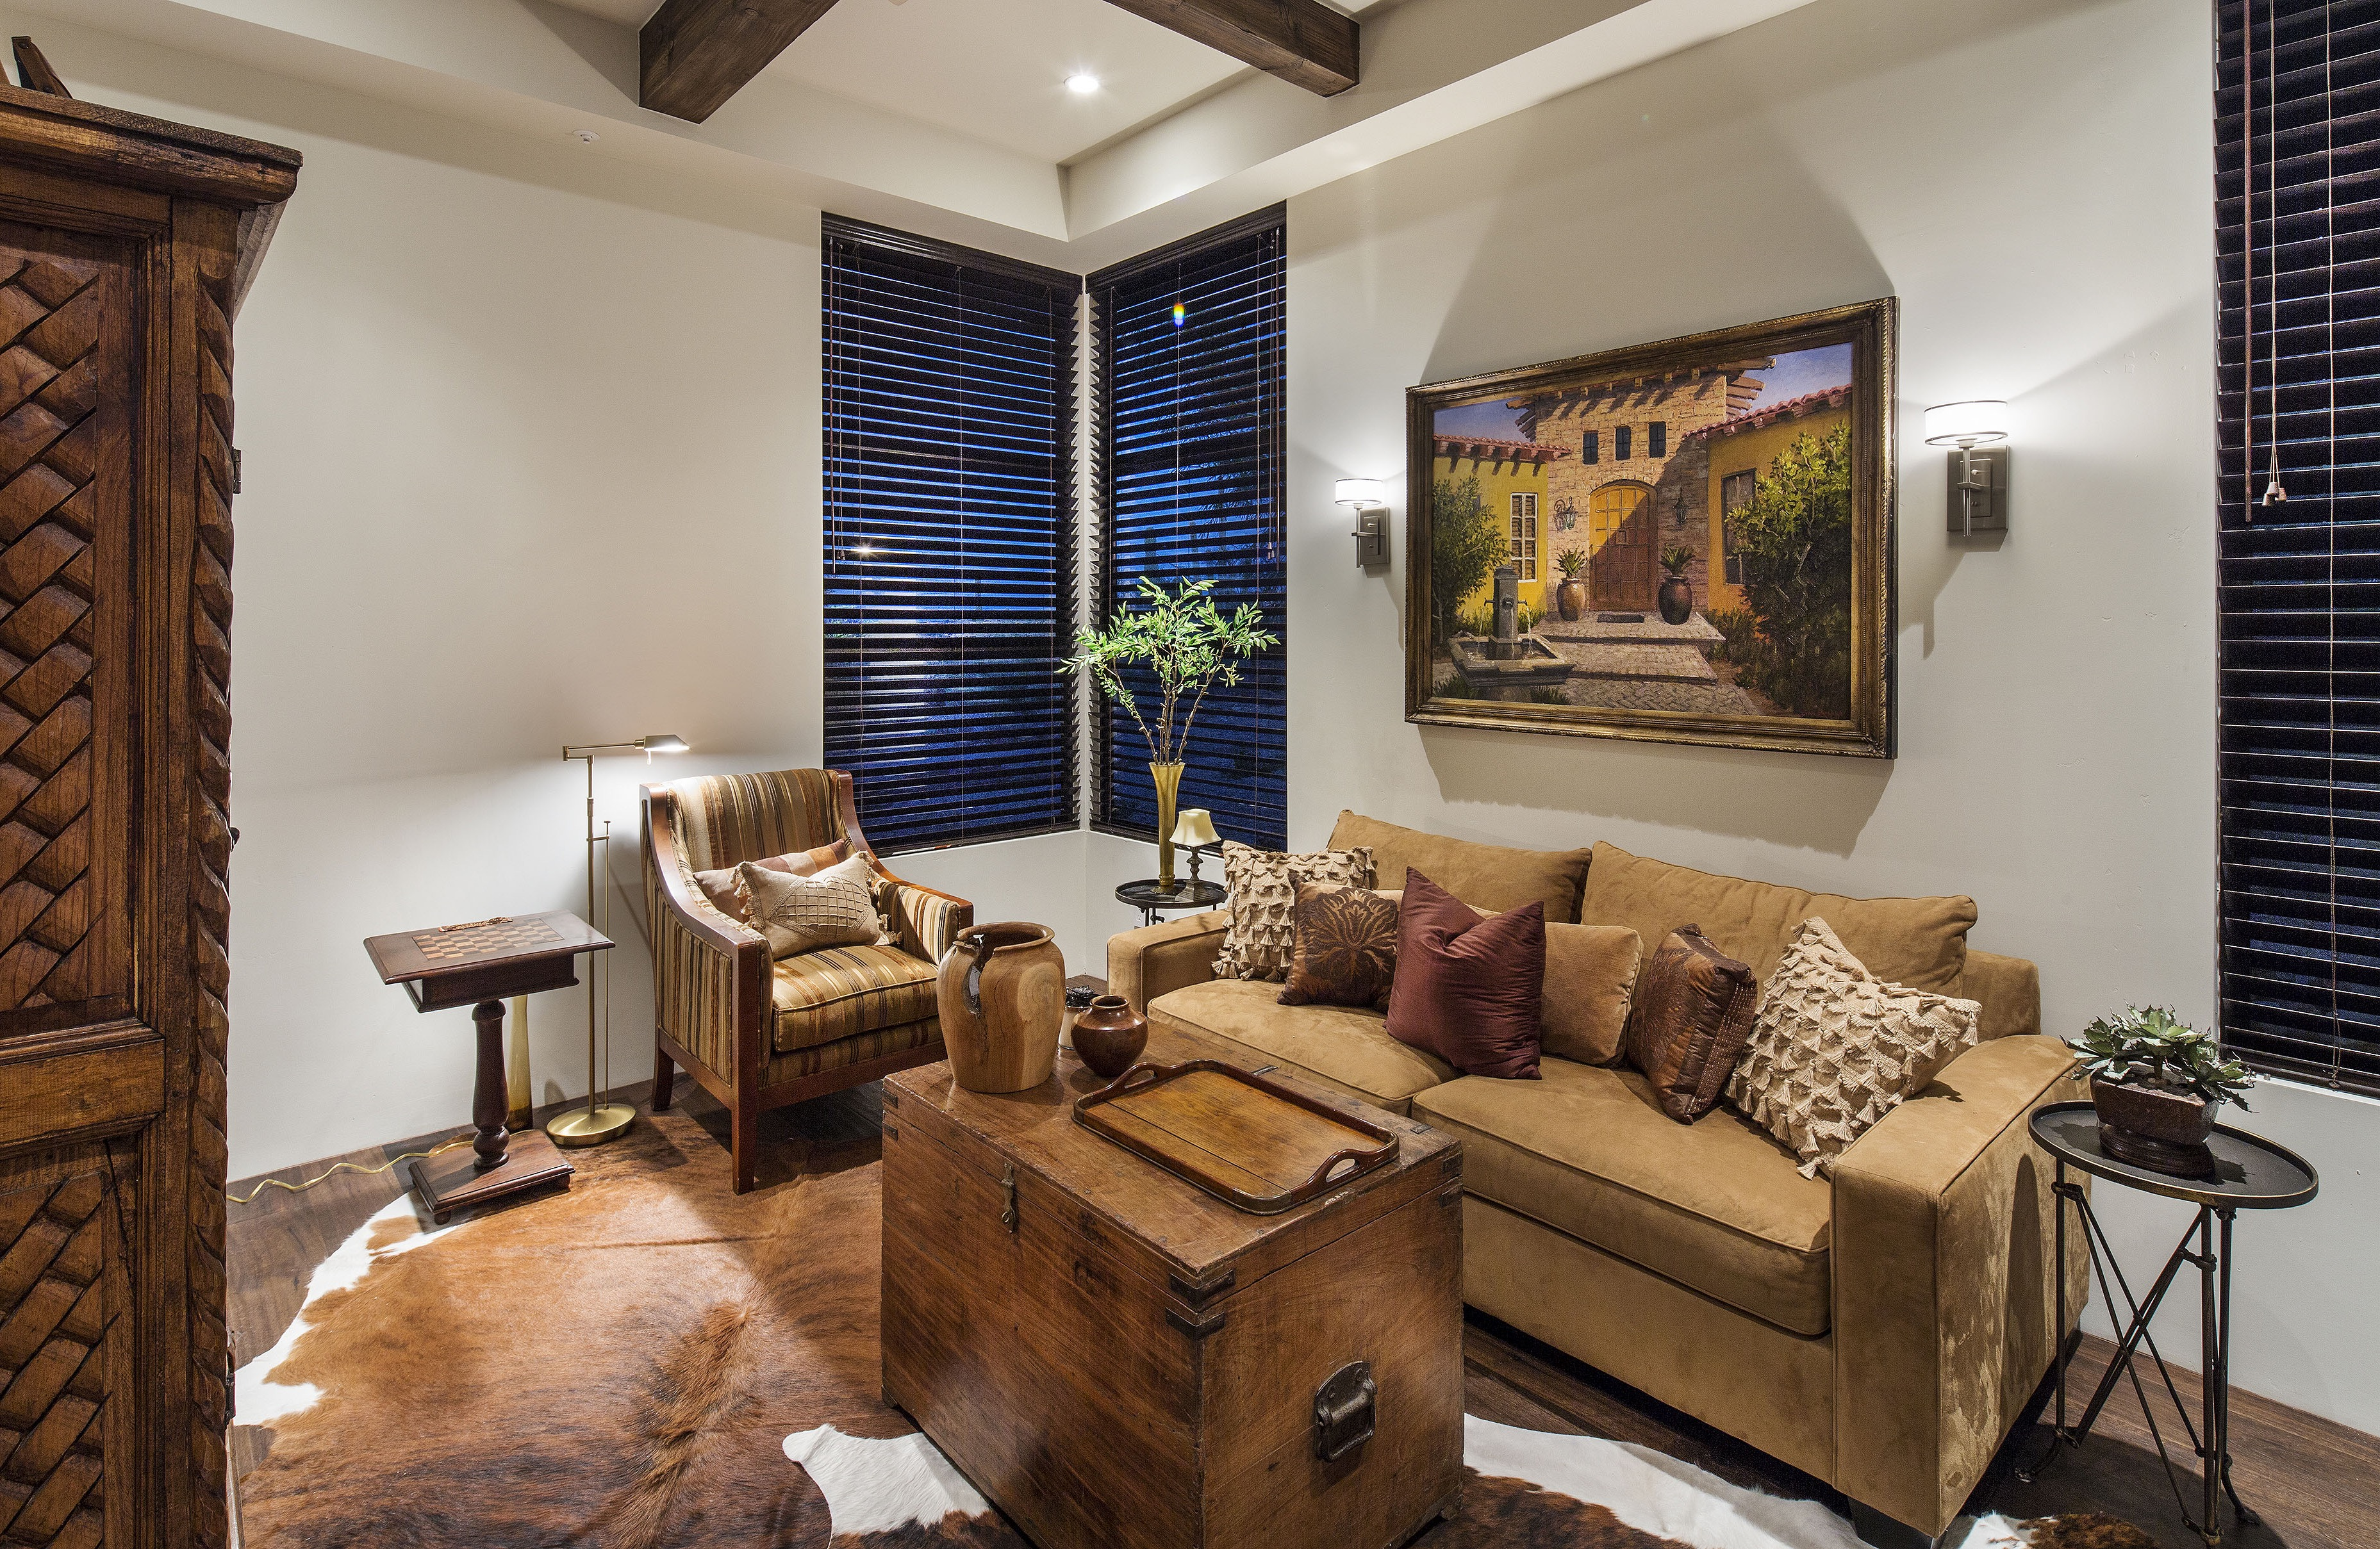 Comfy Southwestern Living Room With Tan Furniture And Cowhide Rug (View 10 of 27)